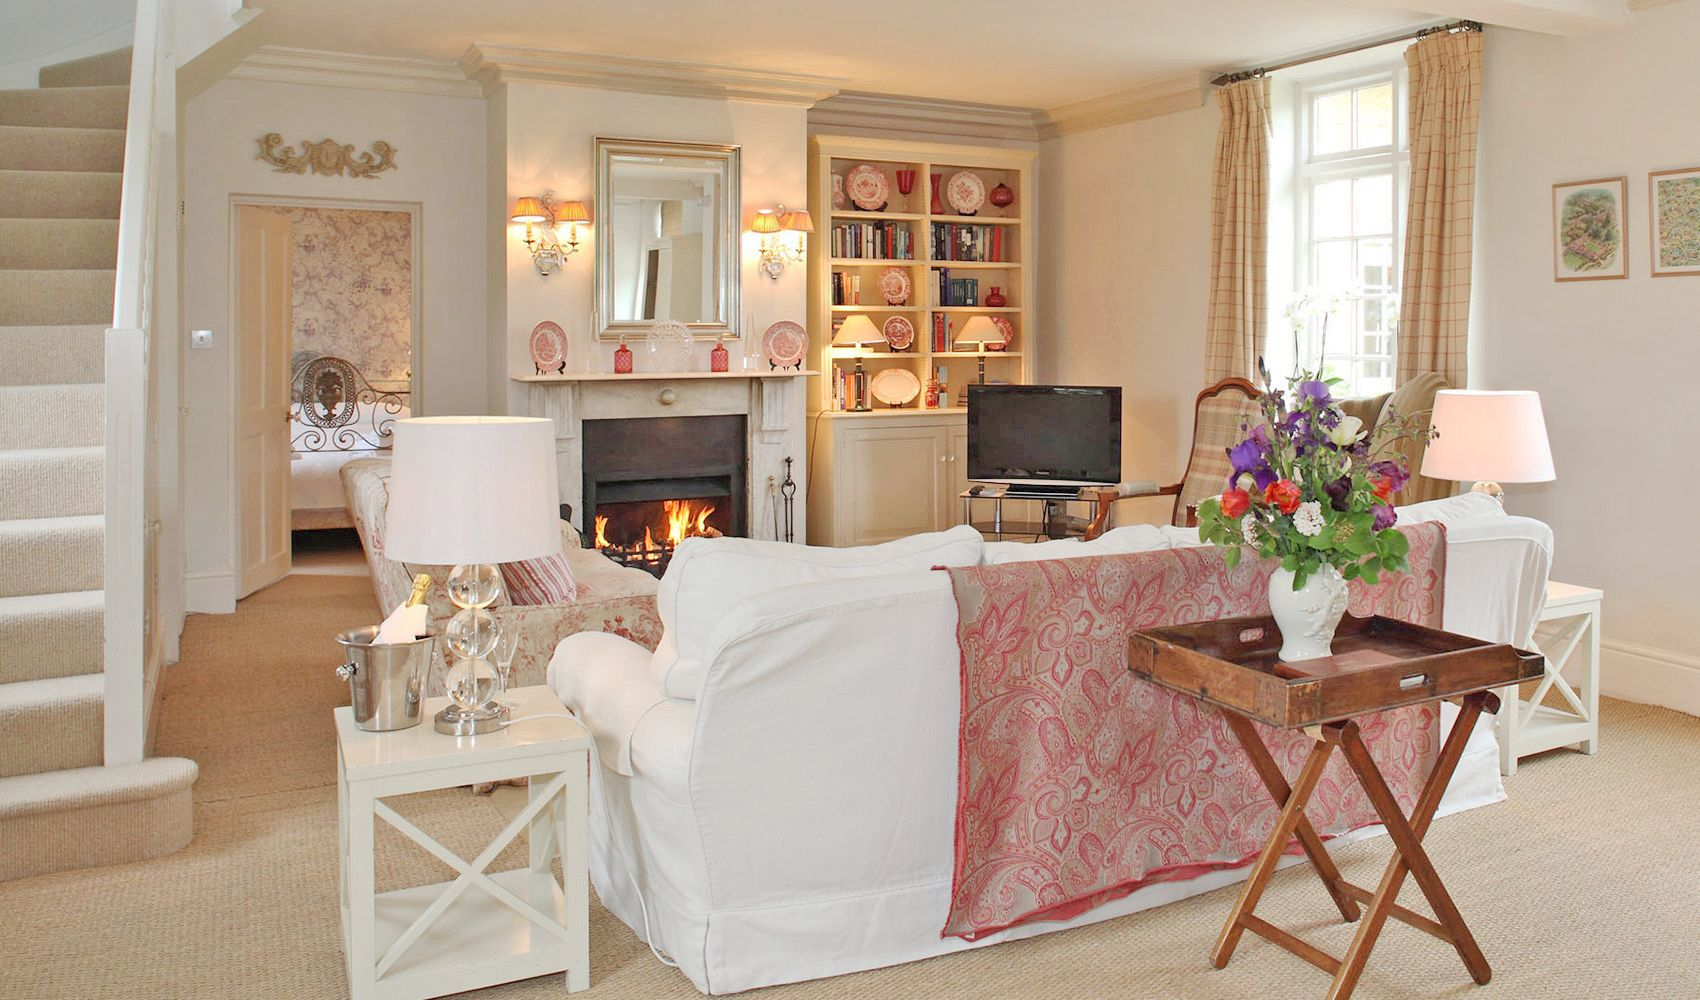 Ground floor: Enormous open plan drawing/dining room/kitchen with an open fire